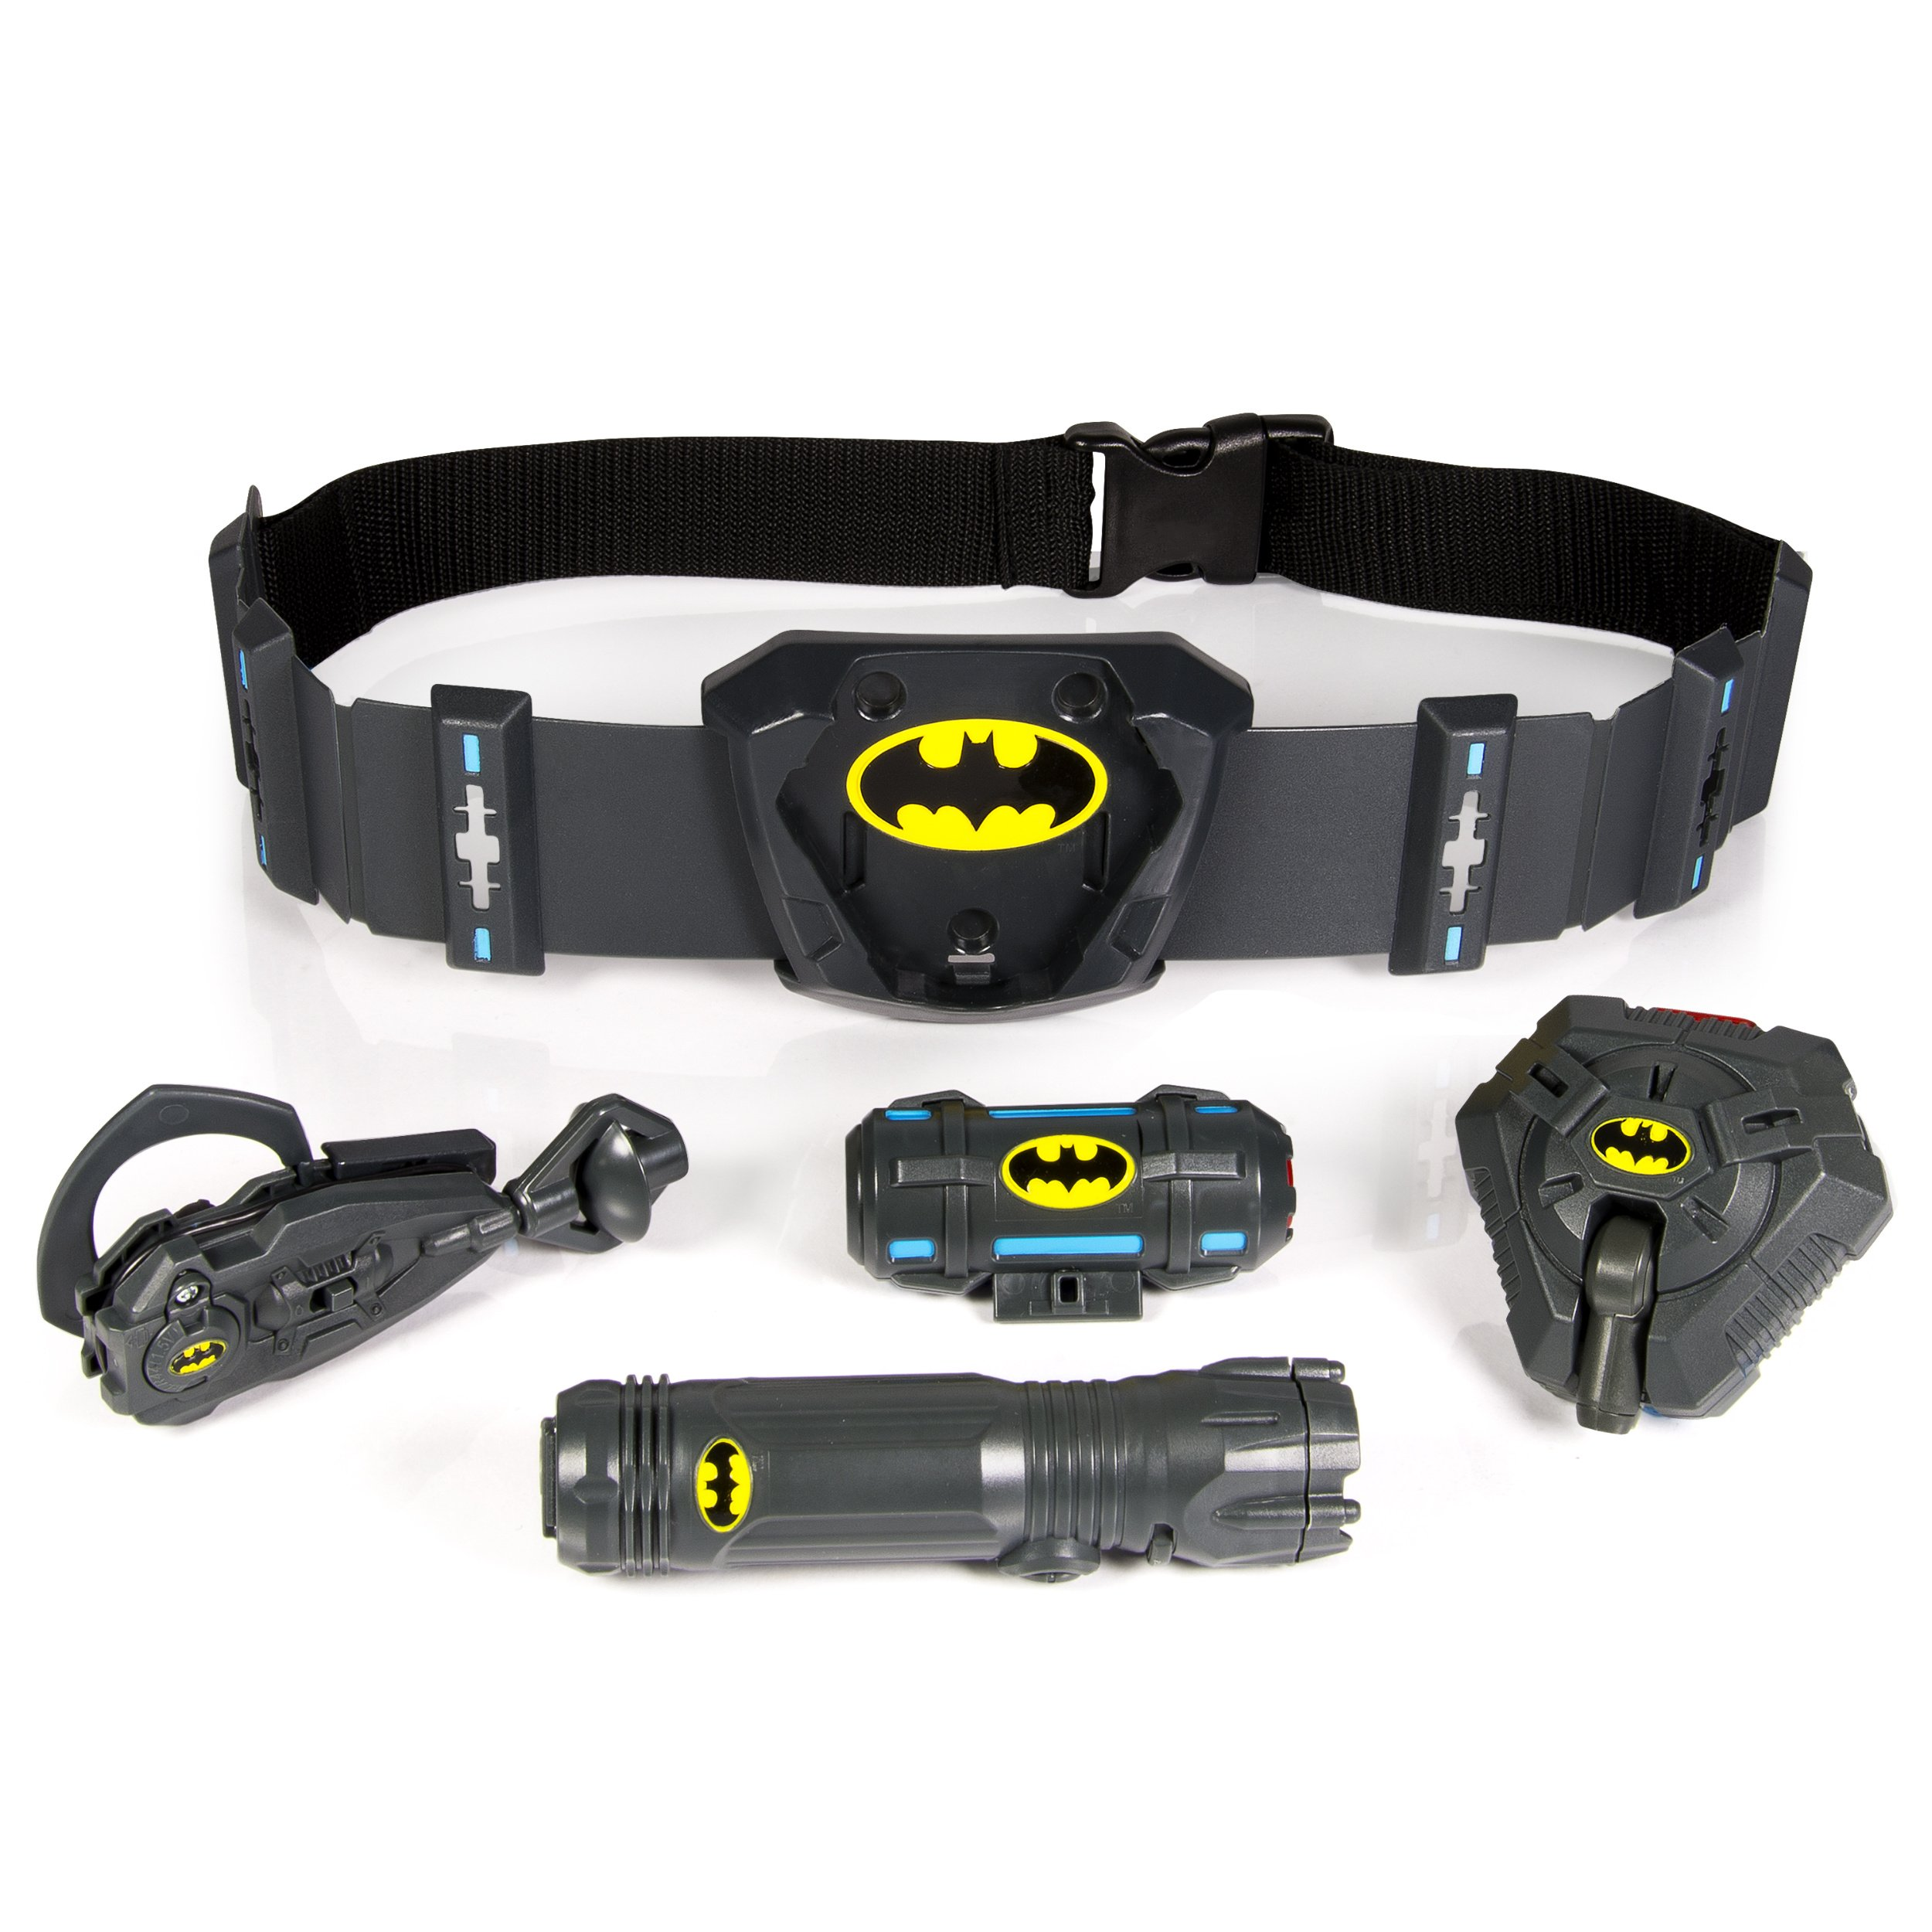 Spy Gear - Batman Ultimate Utility Belt Bundle by Spy Gear